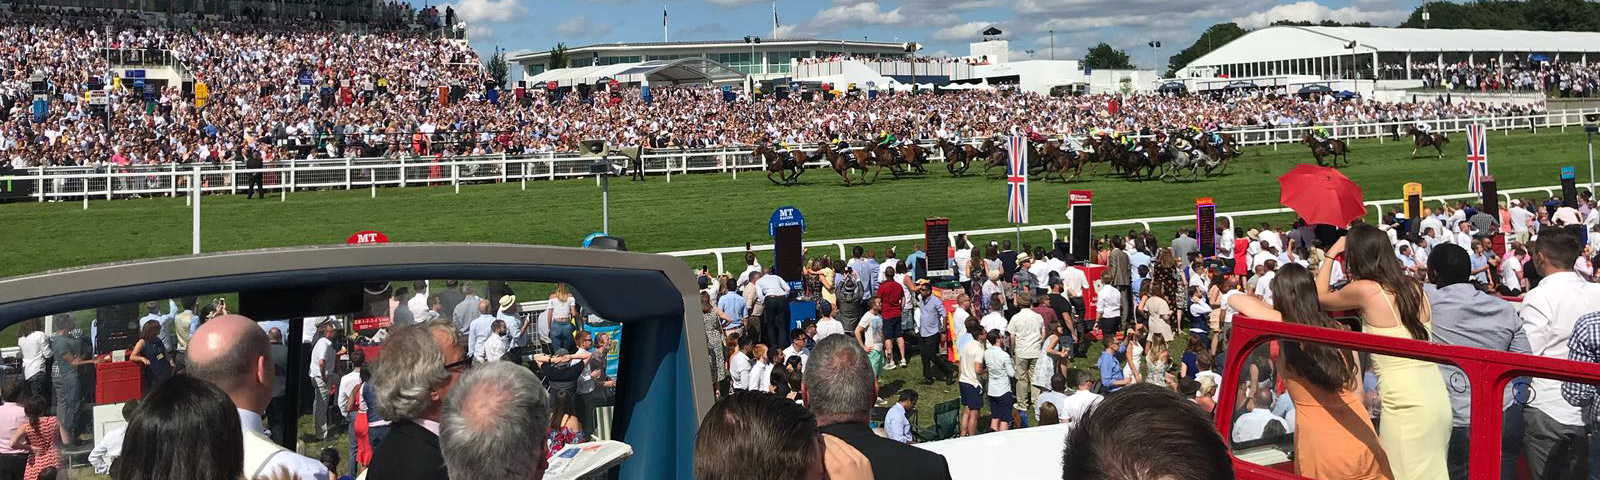 Derby Meeting Epsom Racecourse Open Top Bus Experience – Friday (Ladies Day) 5th or Saturday (Derby Day) 6th June 2020